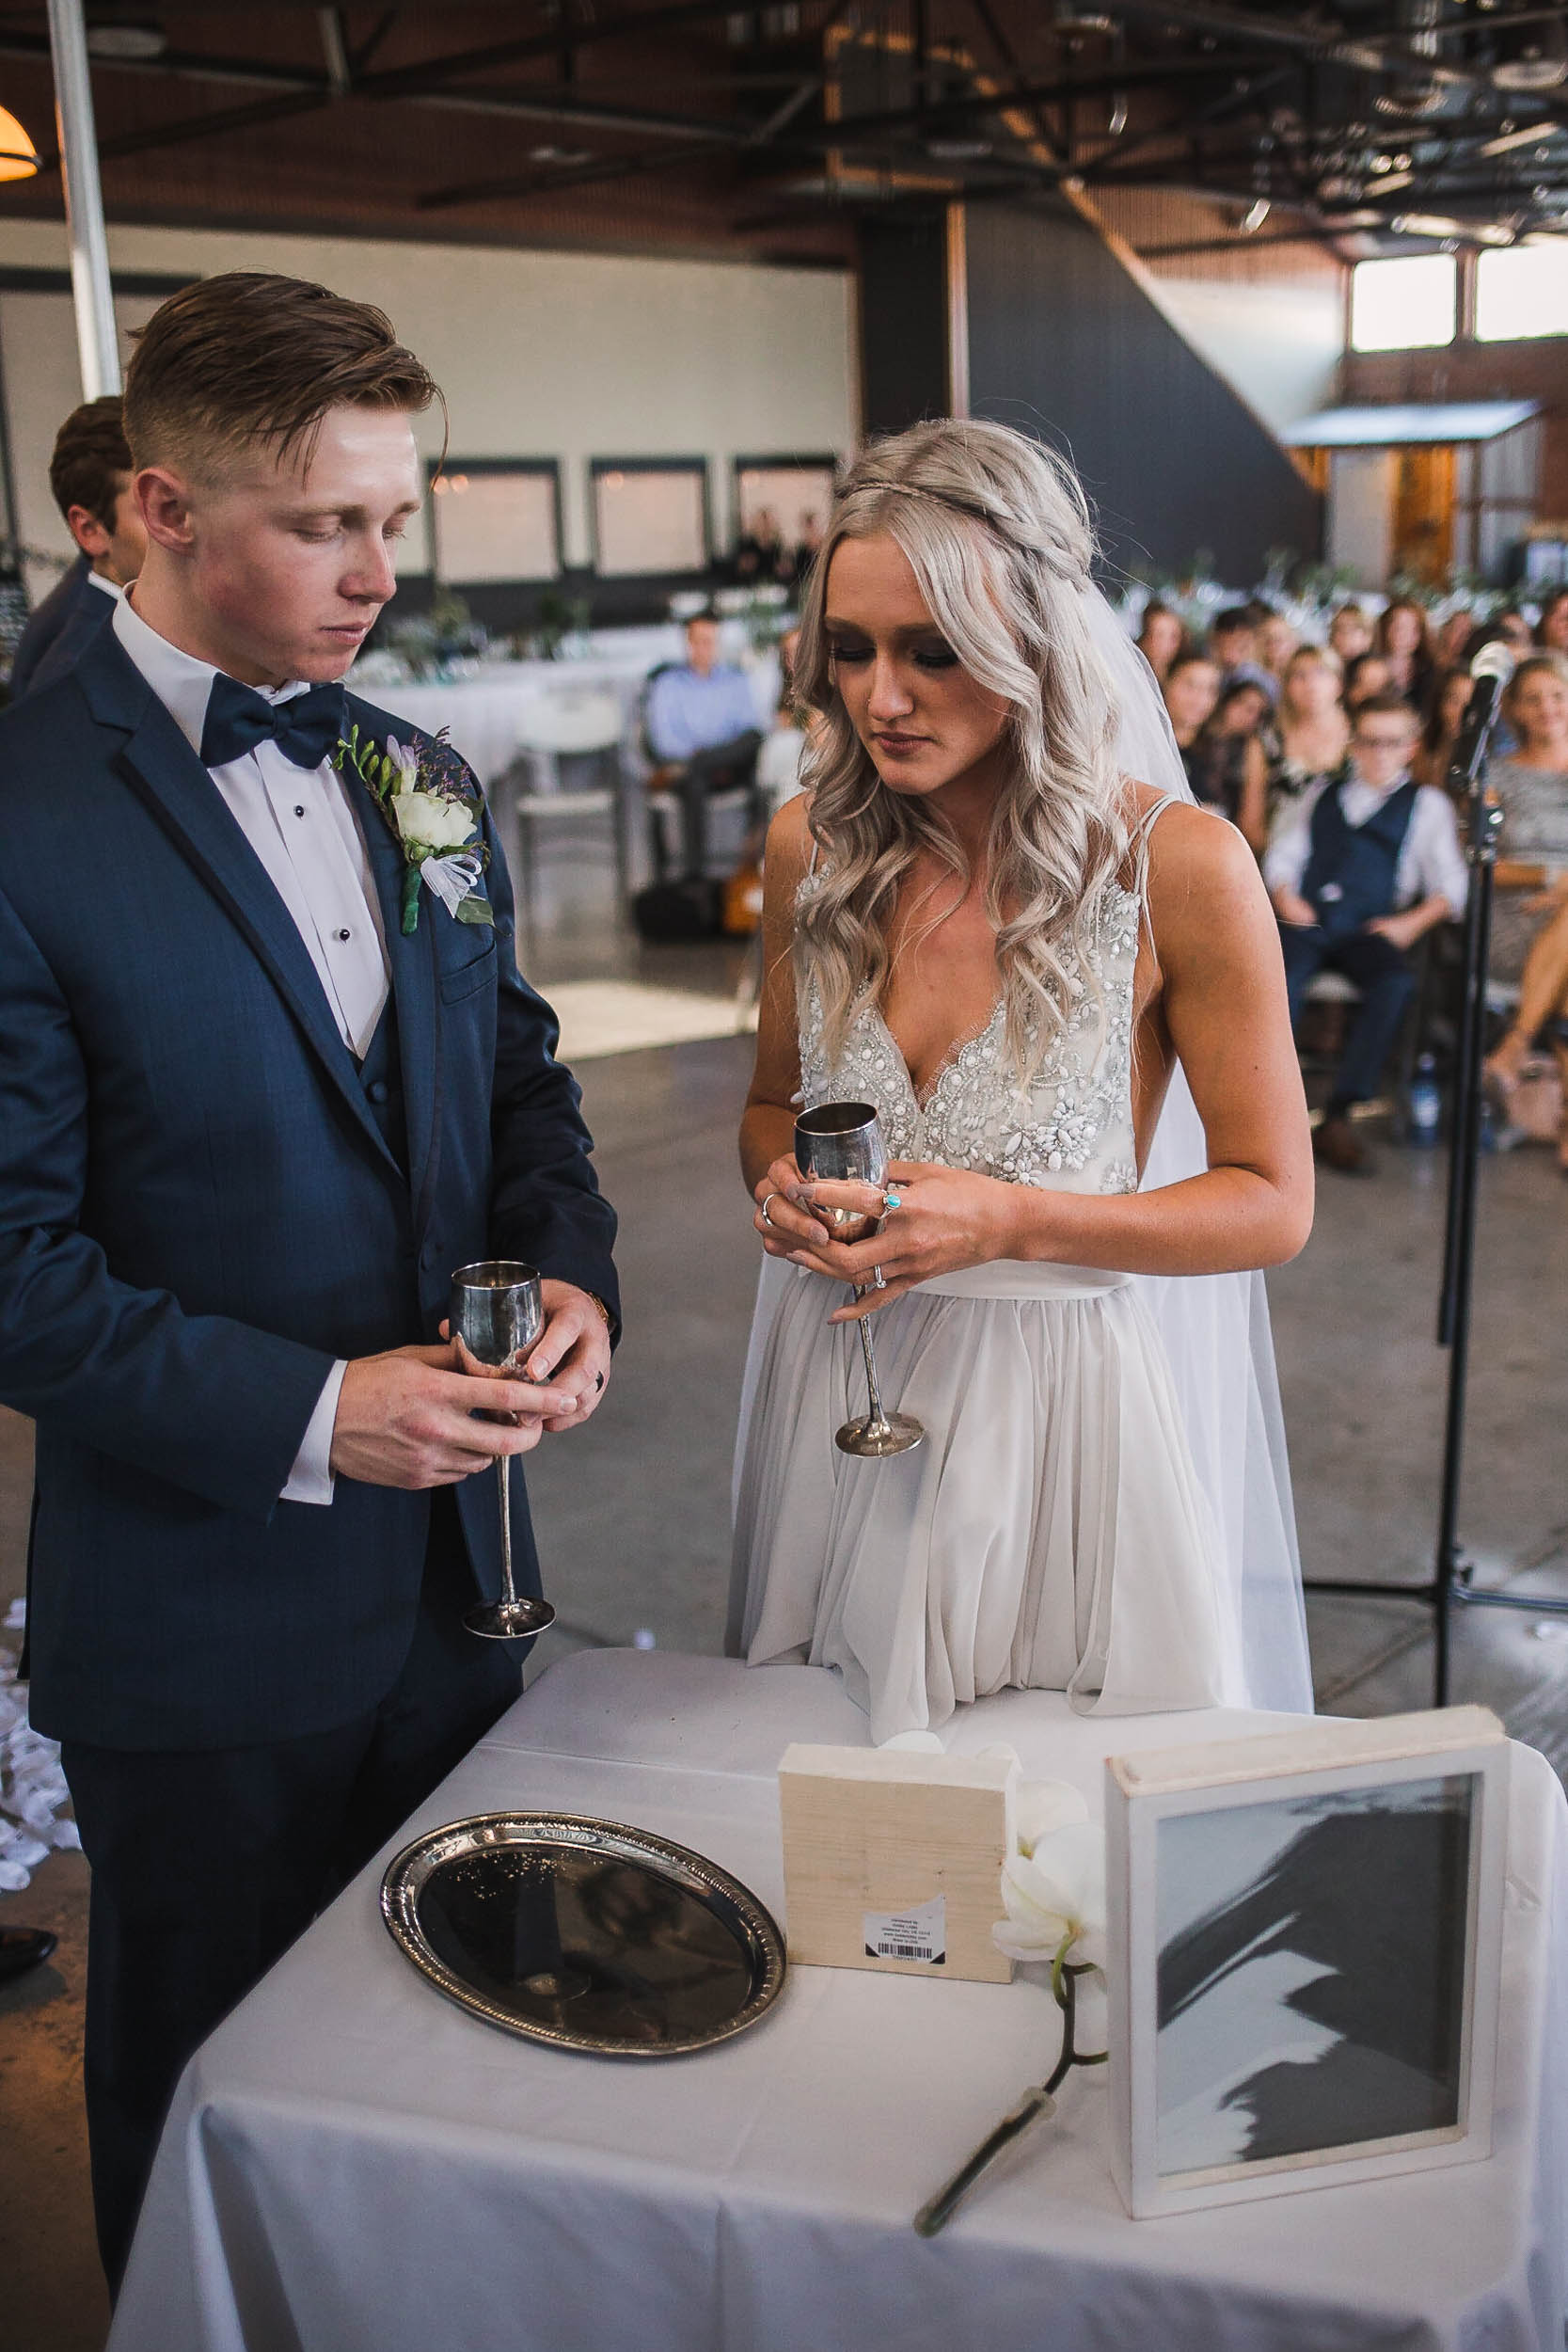 Bride and groom taking communion at their wedding ceremony